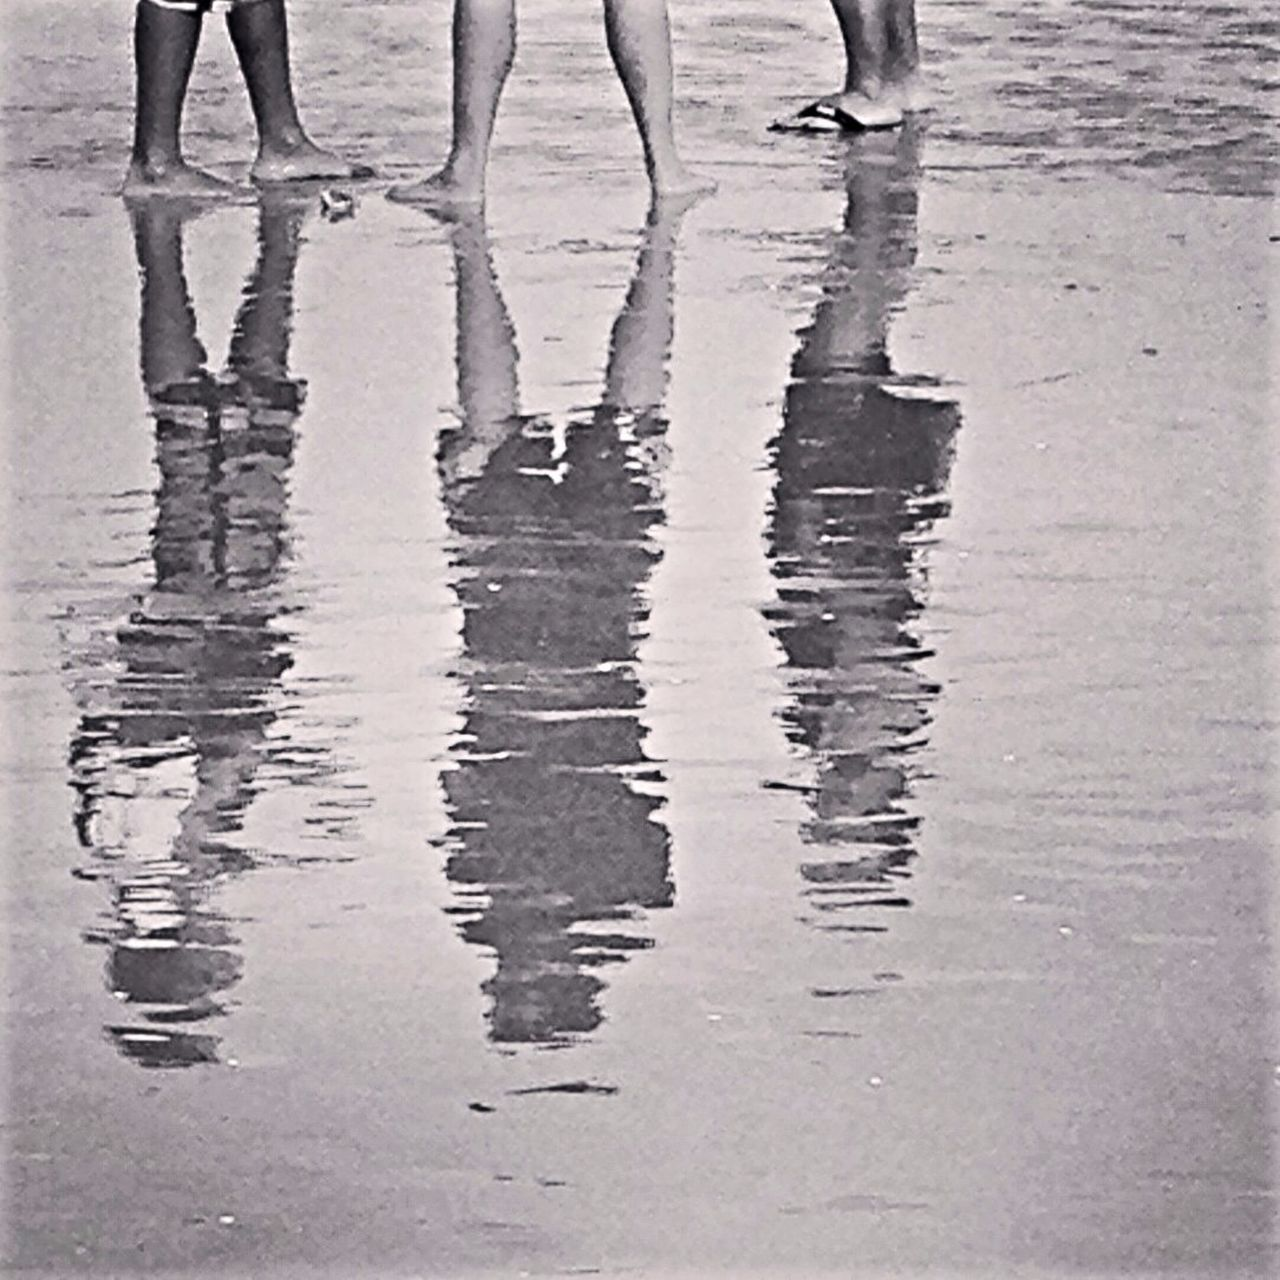 Reflection Of Three People On Beach